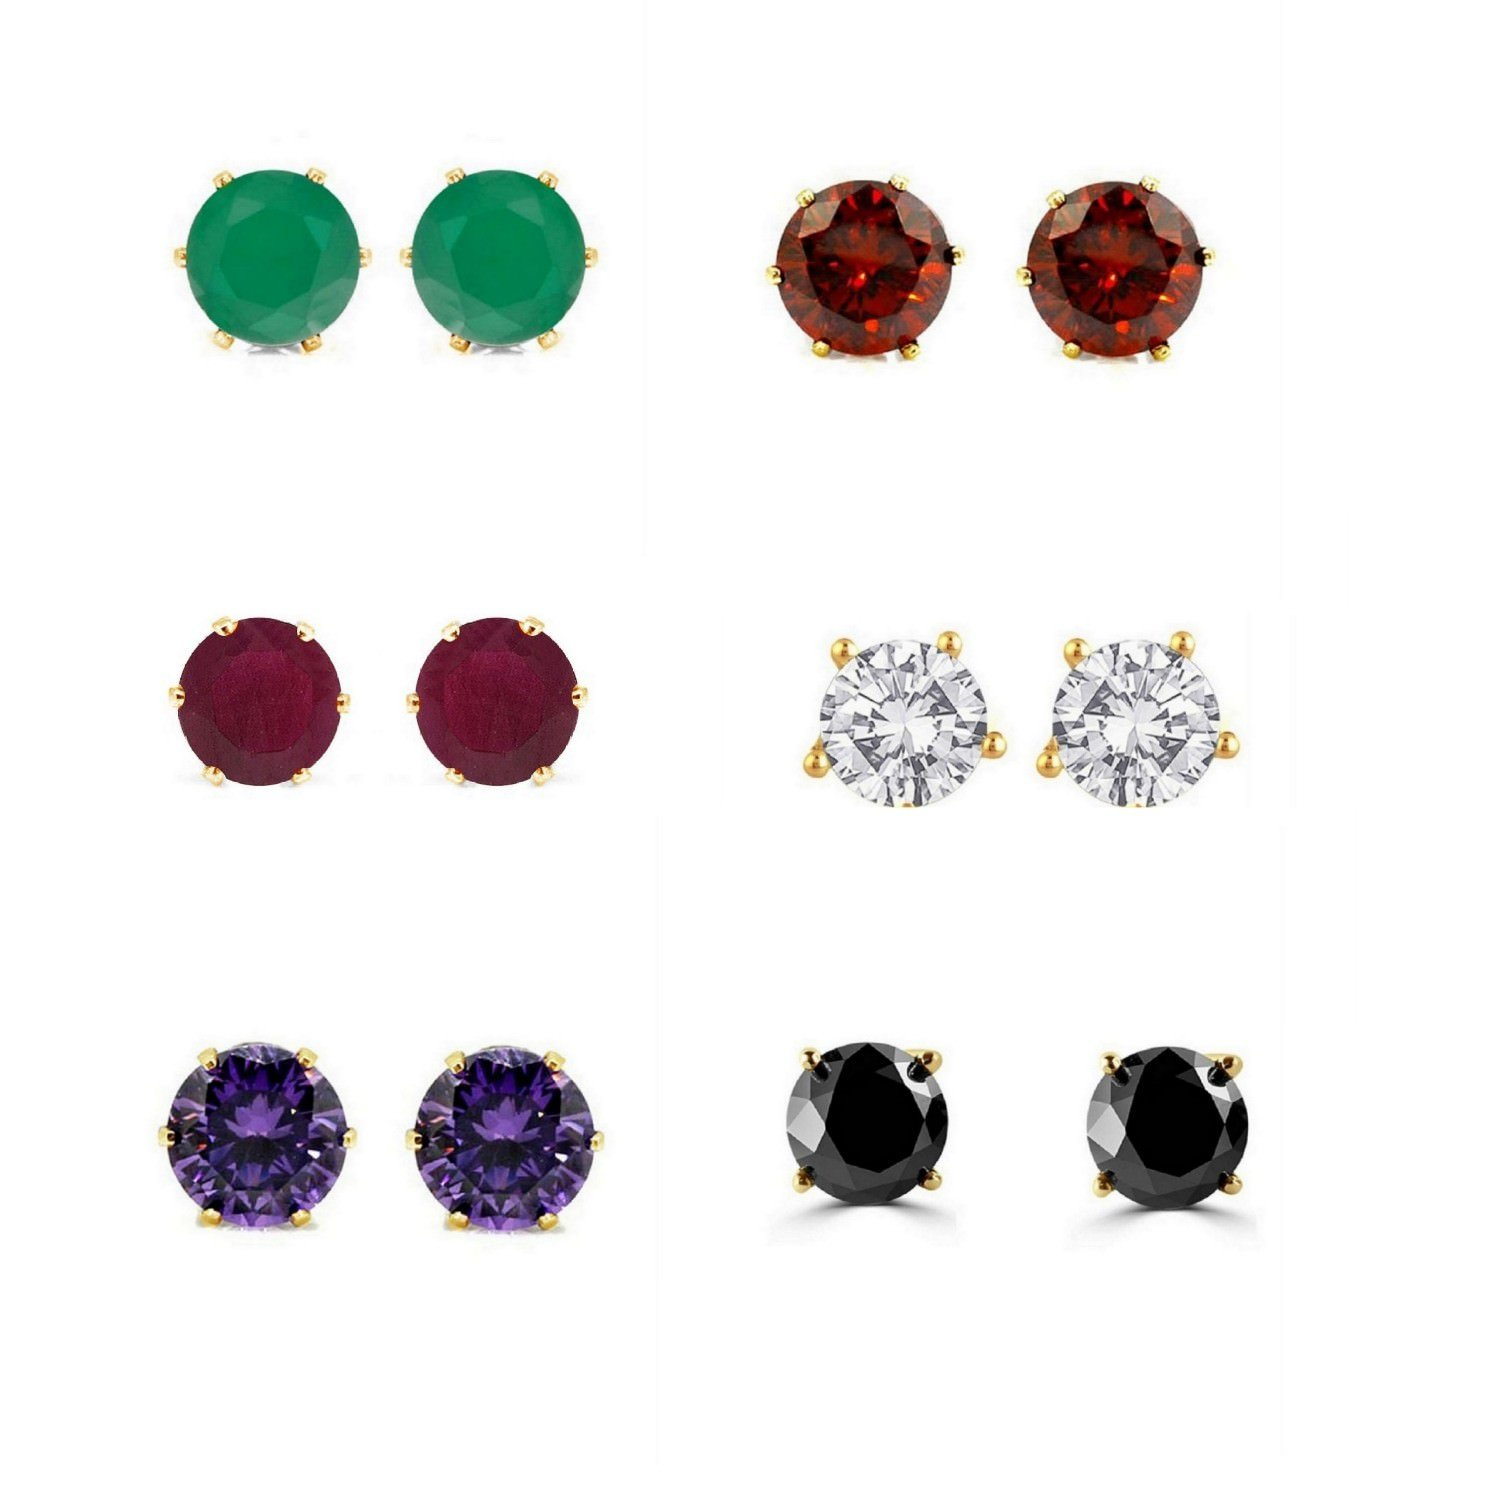 Archi Collection Jewellery Combo of Gold Plated American Diamond Earrings Studs for Girls and Women